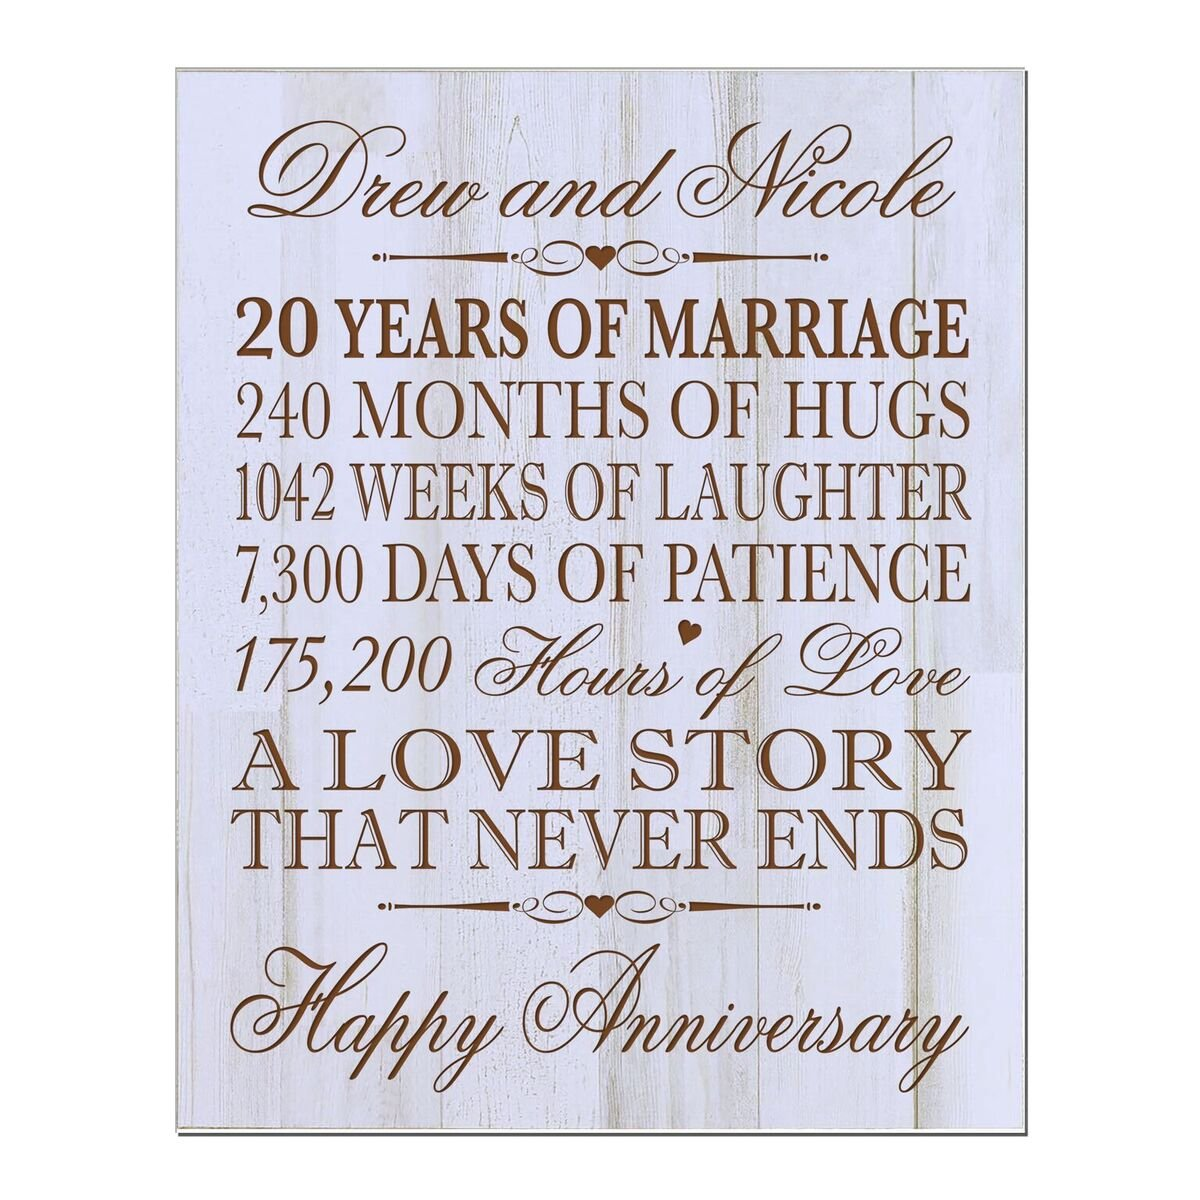 LifeSong Milestones Personalized 20th Wedding Anniversary Wall Plaque Gifts for Couple, Custom 20th for Her, 12 Inches Wide X 15 Inches High Wall Plaque (Distressed White) by LifeSong Milestones